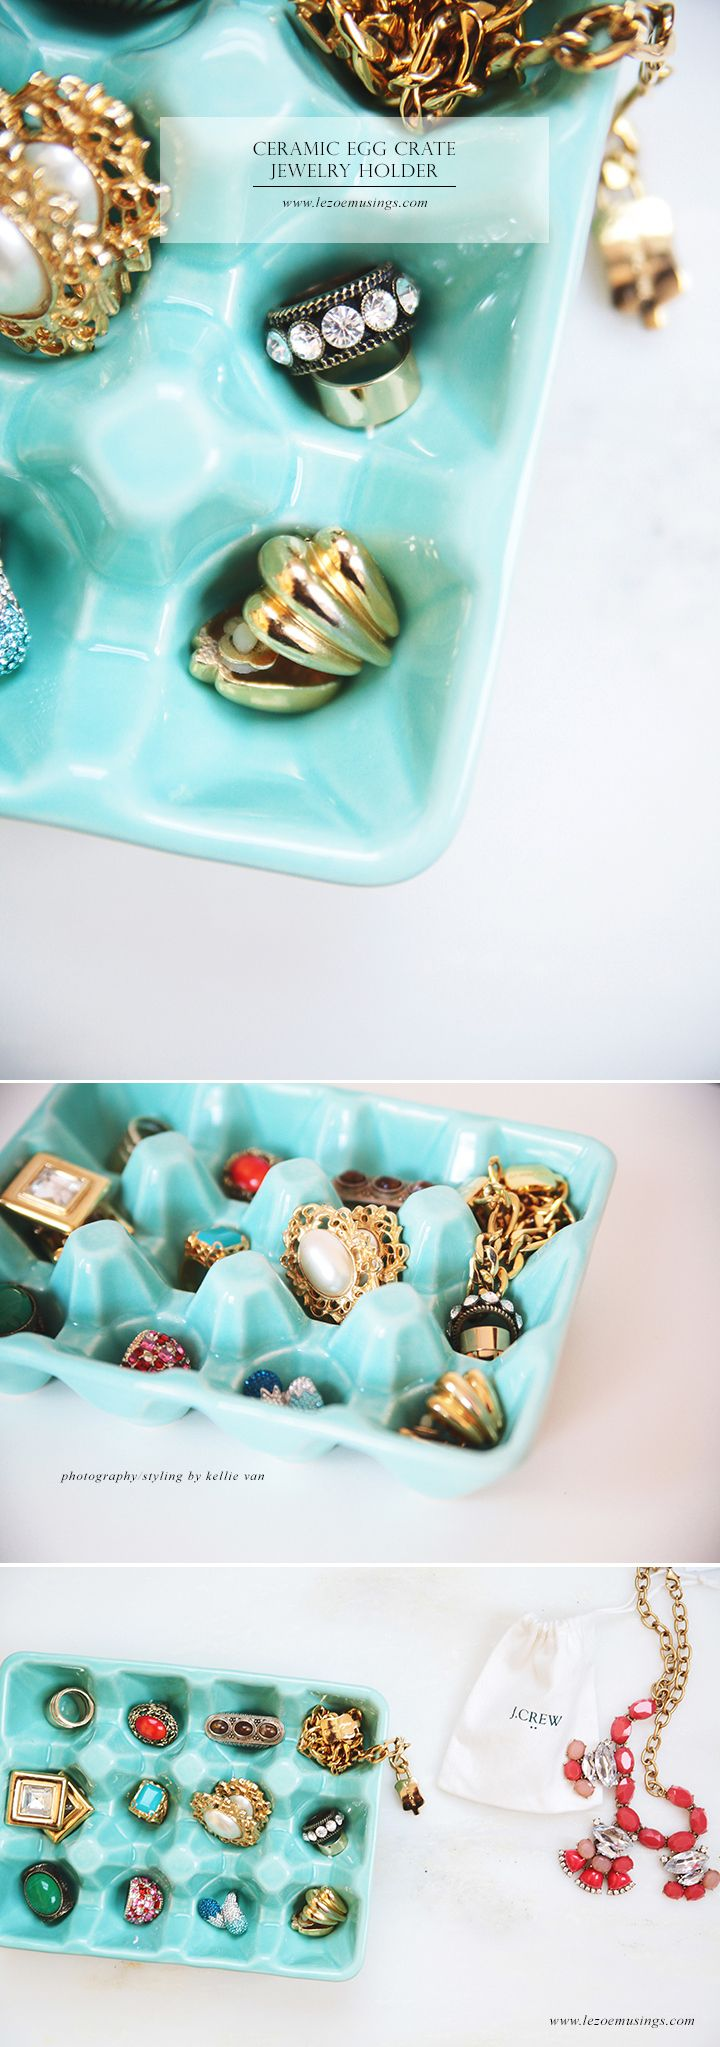 Turn a Ceramic Egg Crate into a Jewelry Organizer by Le Zoe Musings